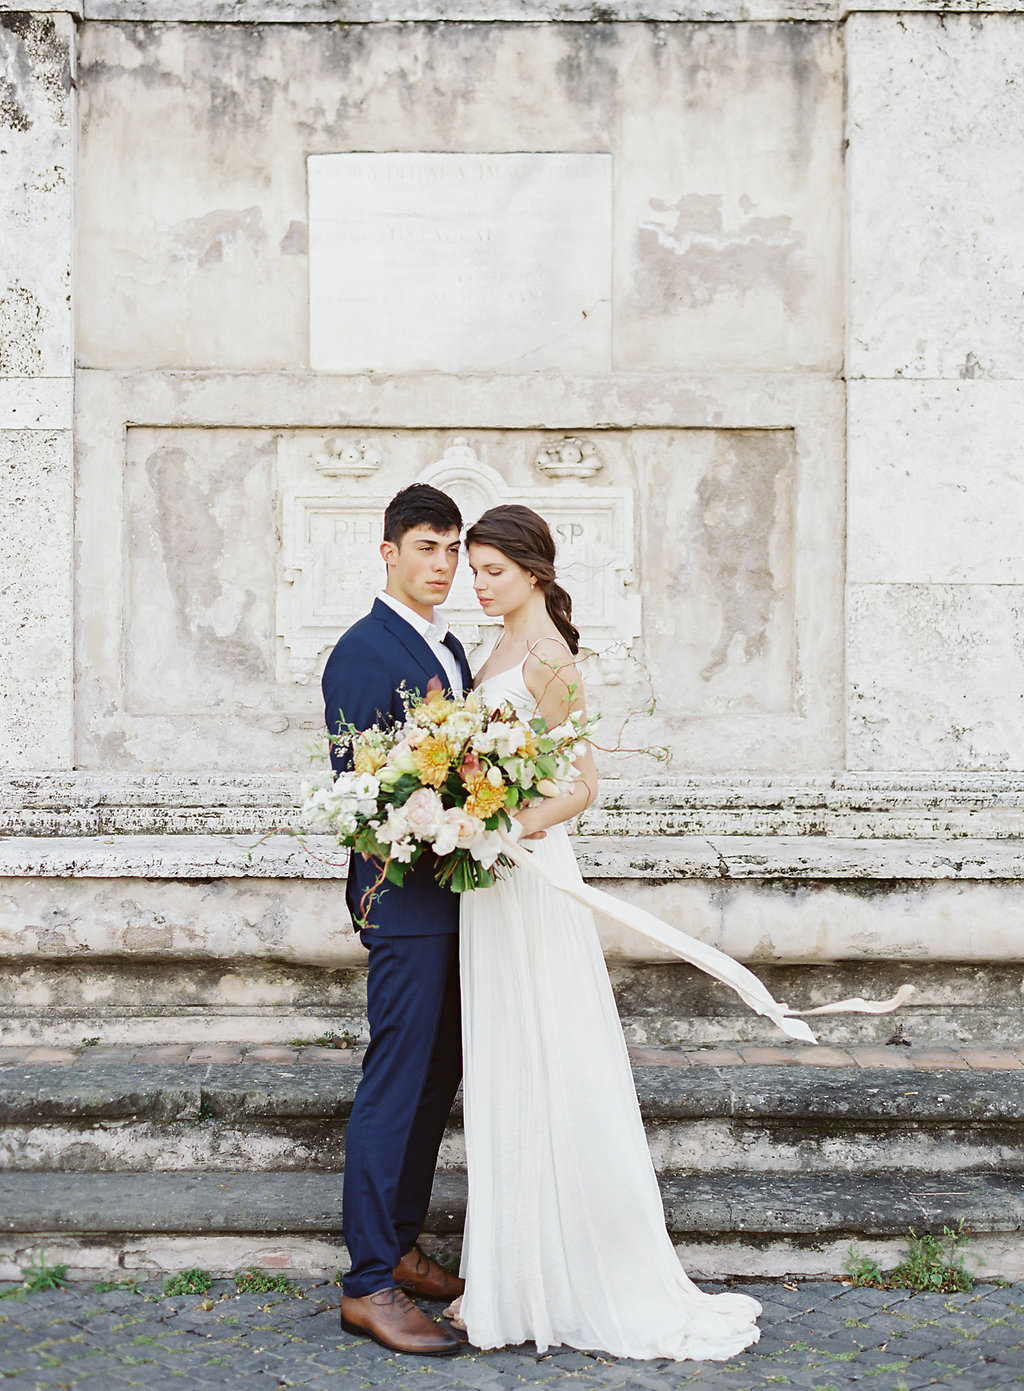 Vicki_Grafton_Photography_Rome_Italy_Wedding_Photographer_2017-48.jpg